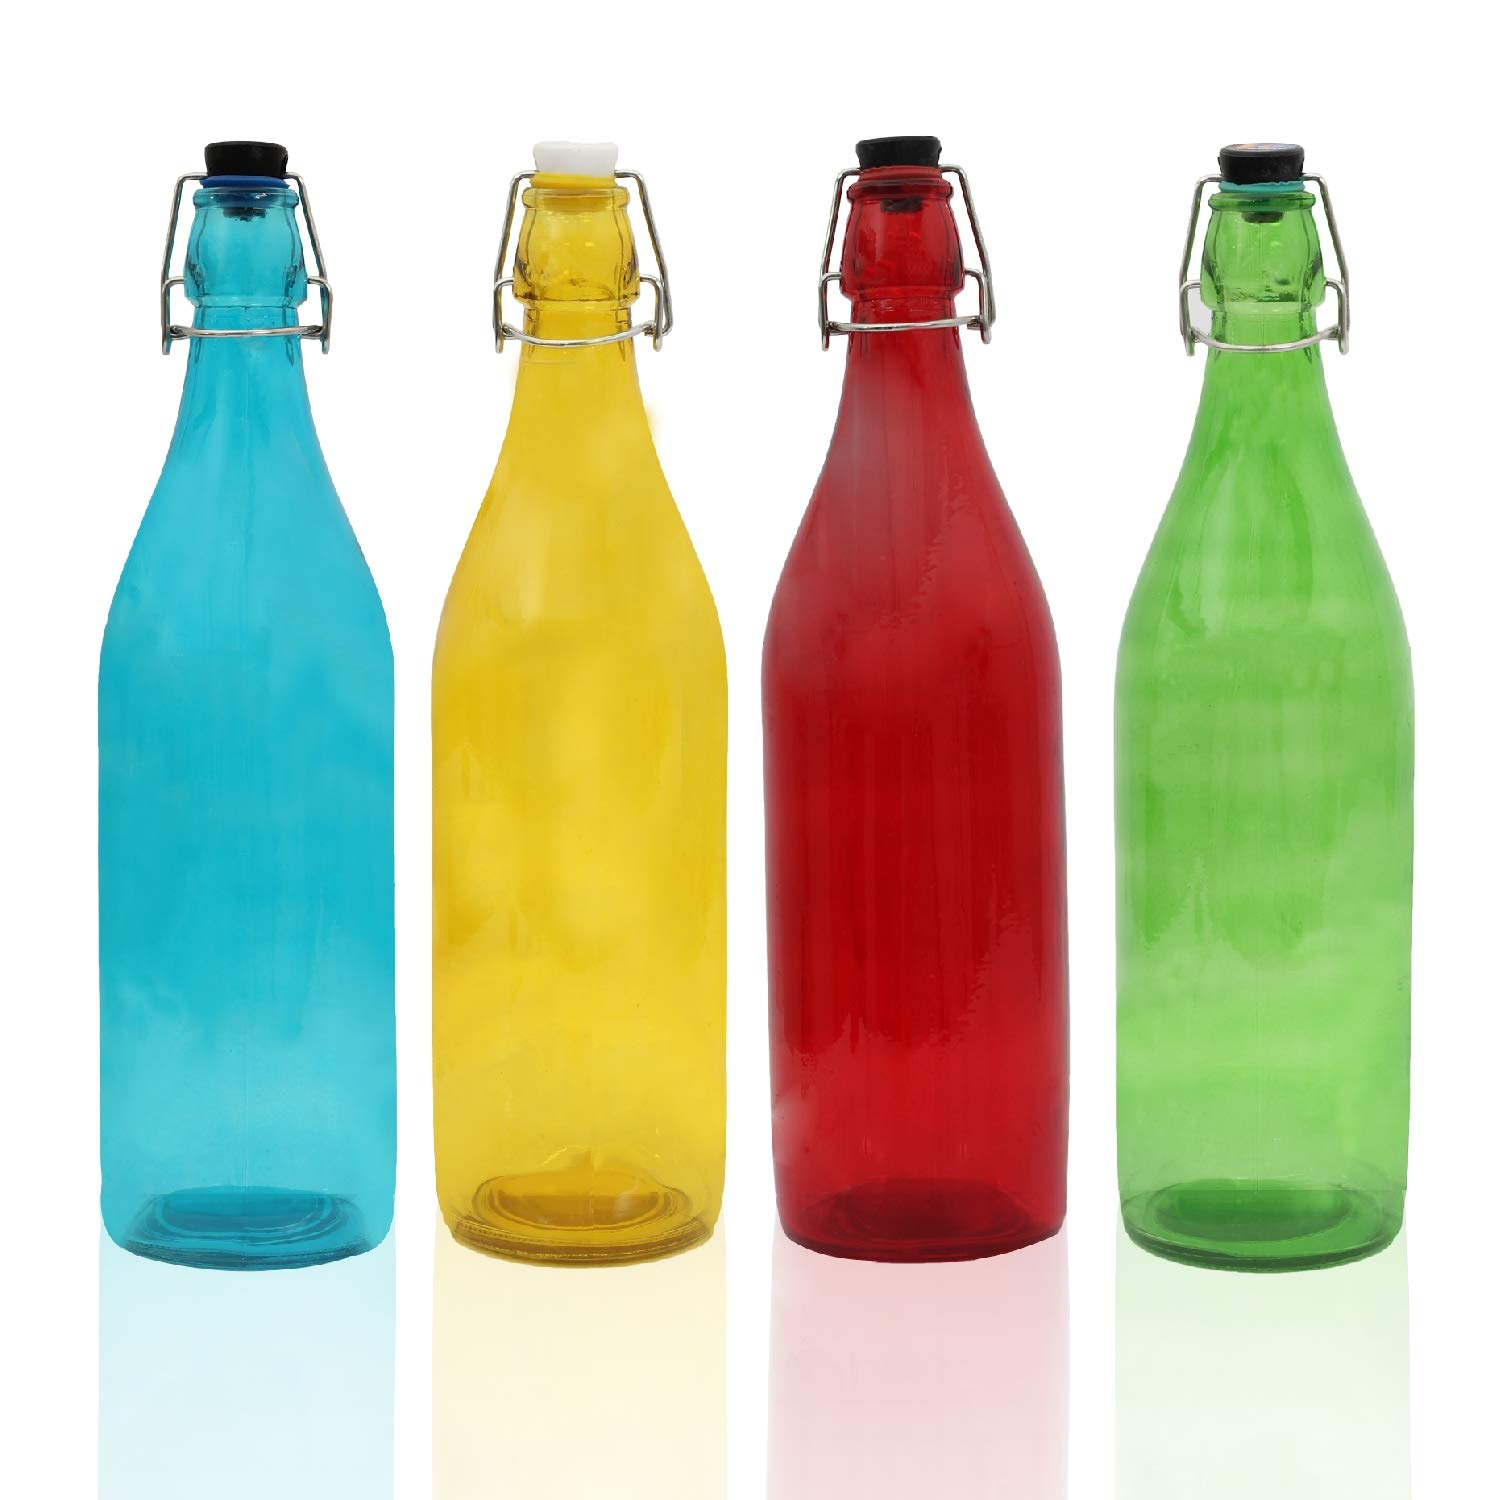 Pb PapyrusBolsys Glass Water Bottles, 1ltr, Set of 4, Multicolor (Round) : Amazon.in: Home & Kitchen